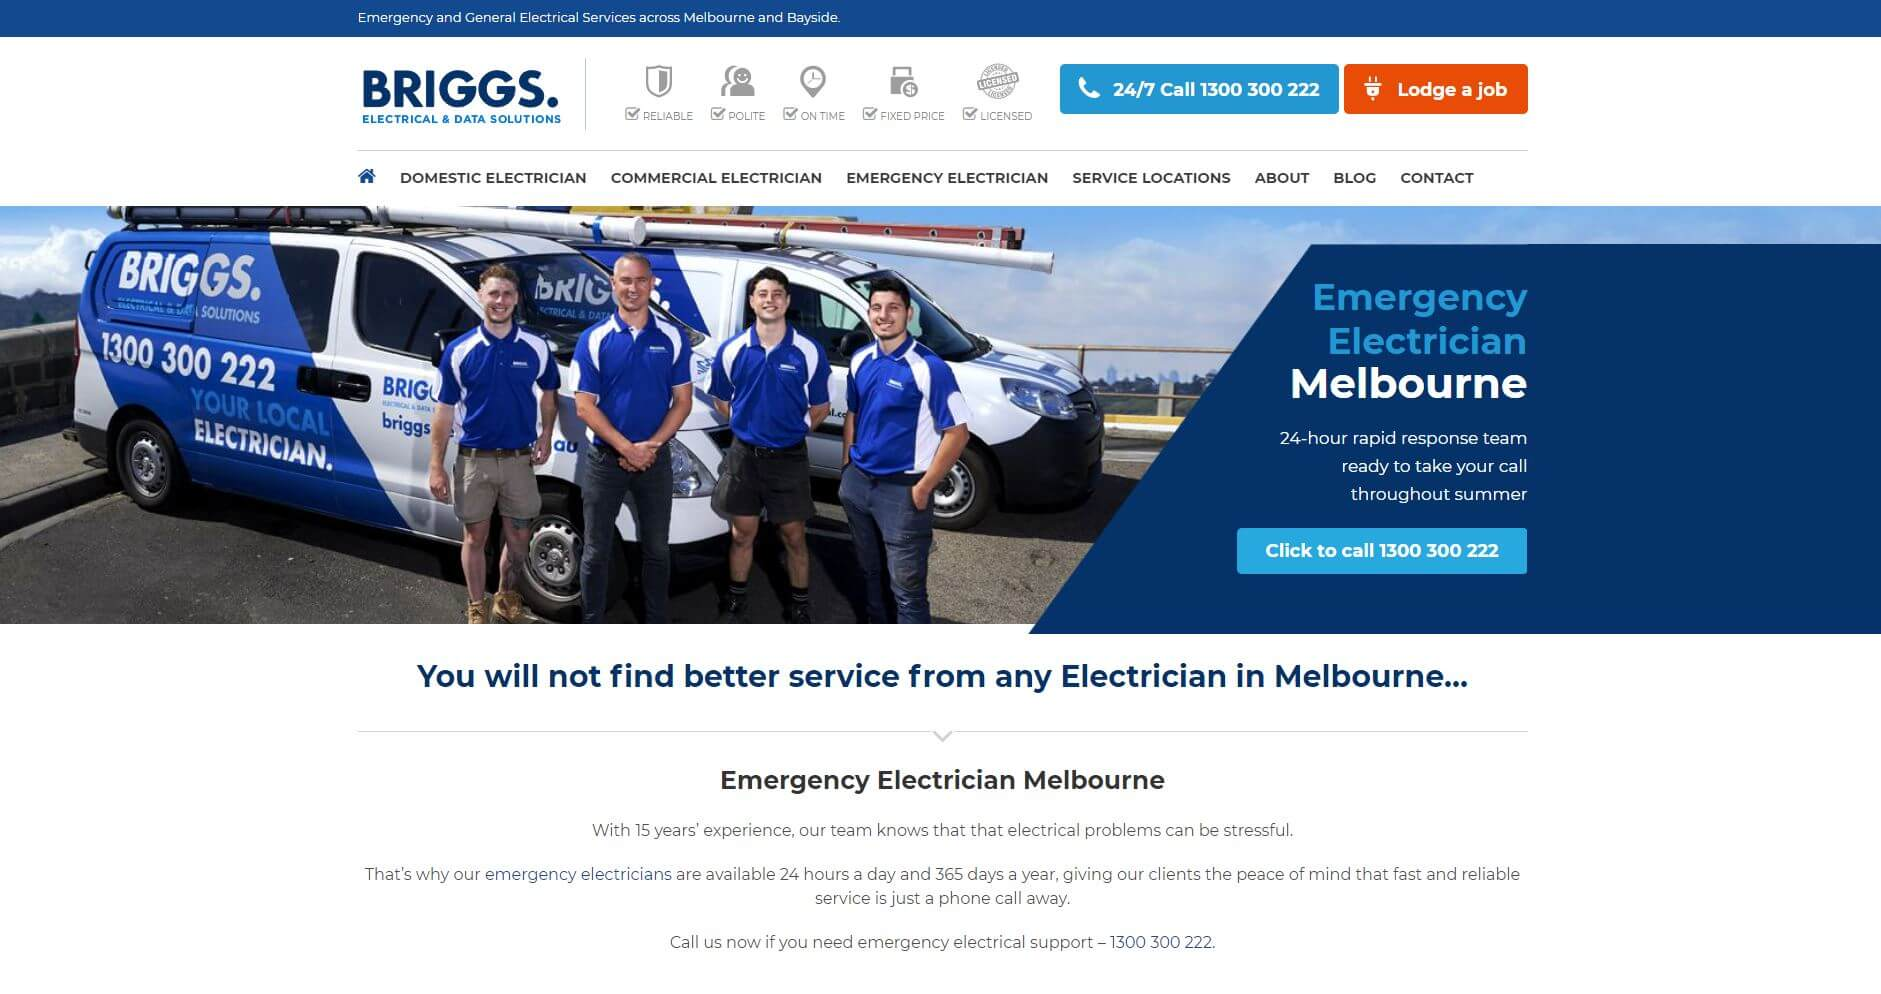 Briggs Electrical & Data Solutions